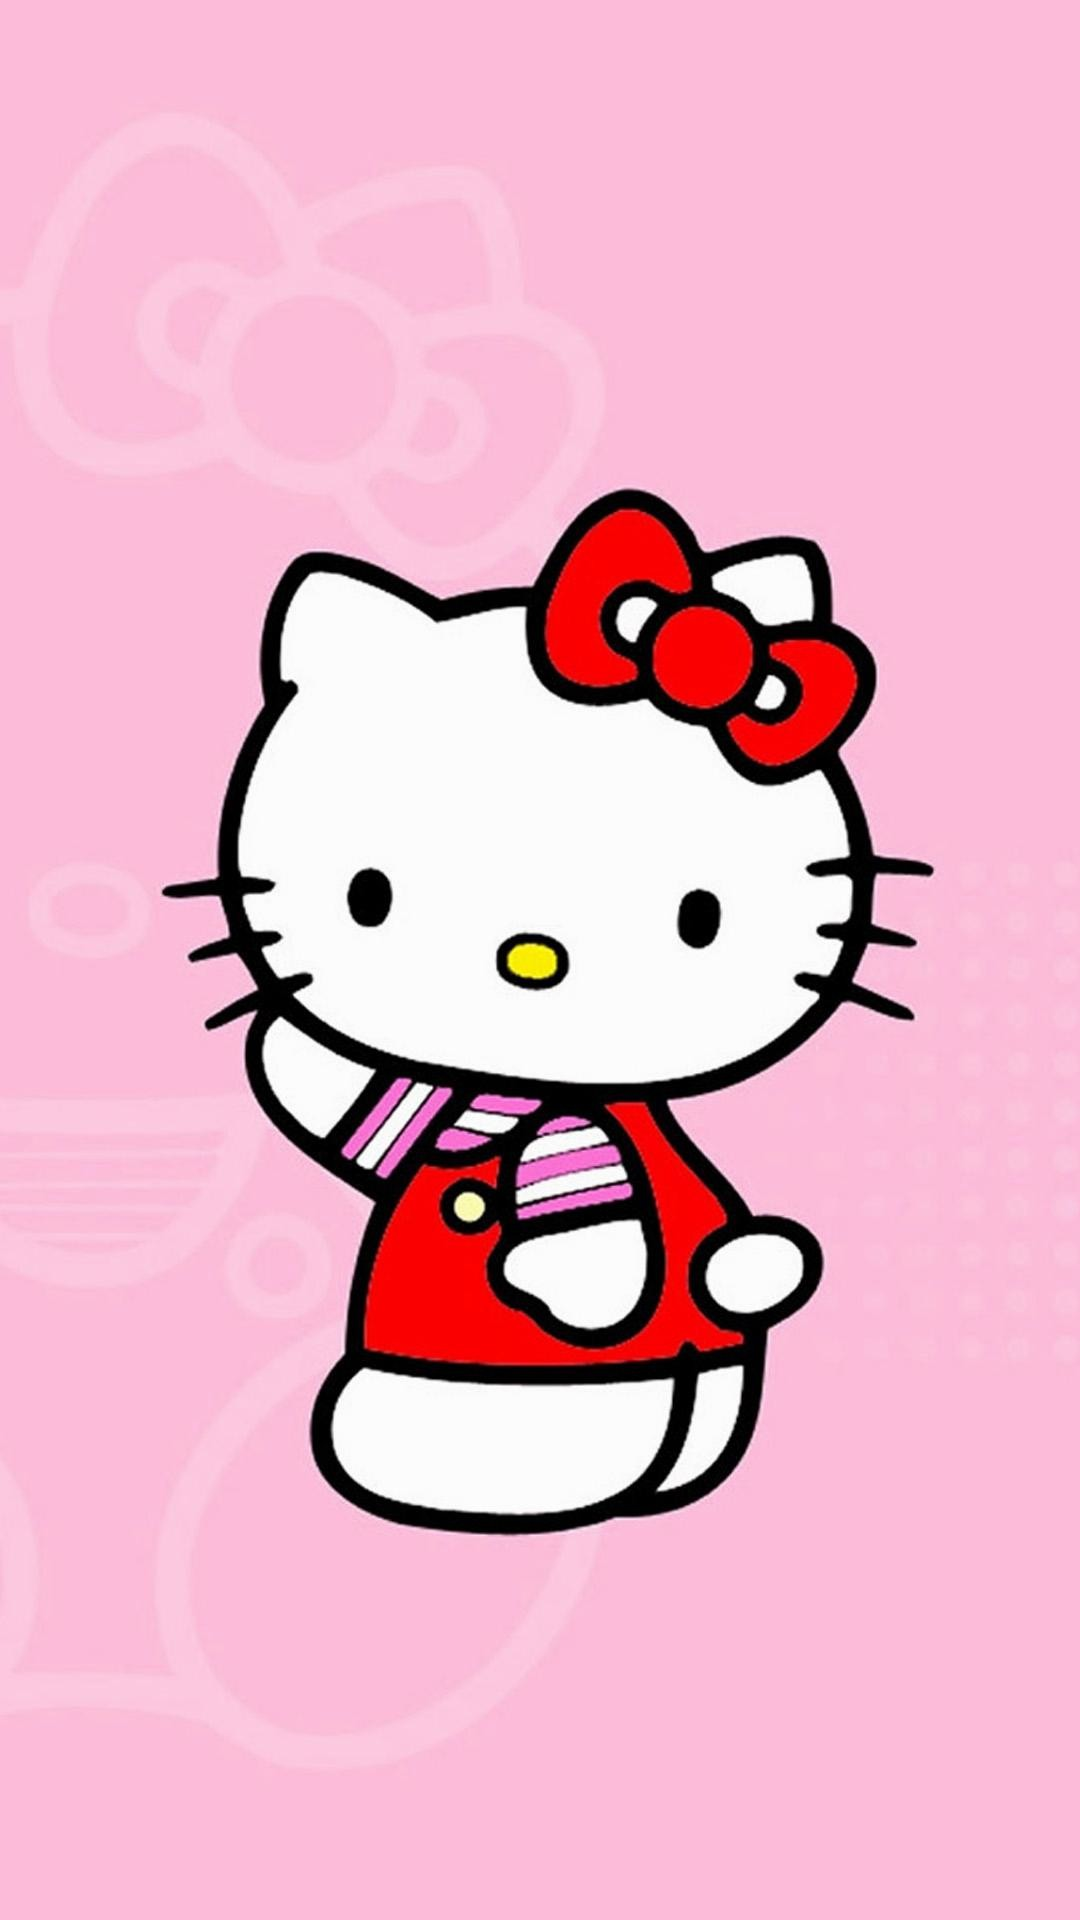 Best Wallpaper Hello Kitty Angel - 929145-cute-wallpapers-of-hello-kitty-1080x1920-for-android-50  Image_725343.jpg